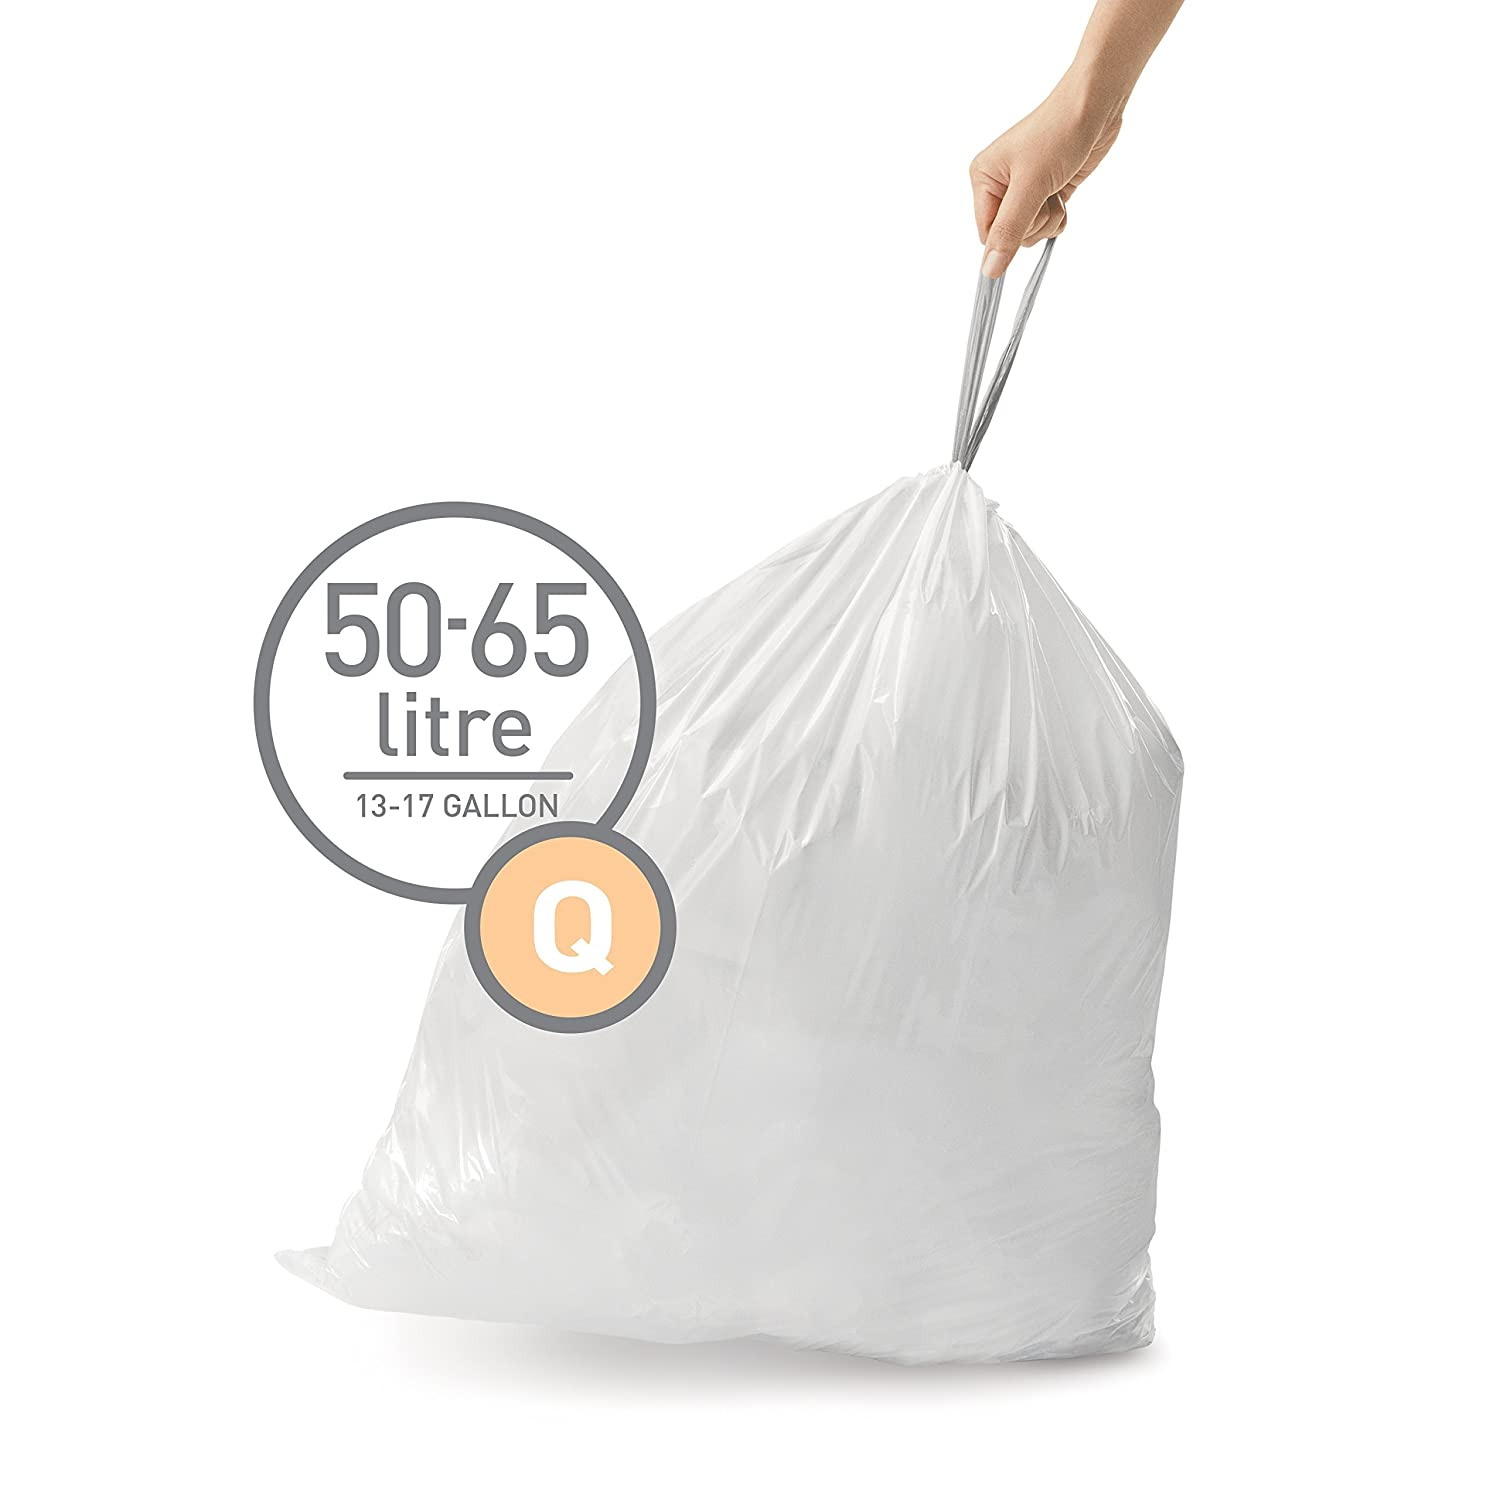 simplehuman Code Q Custom Fit Drawstring Trash Bags, 50 - 65 Liter / 13-17 Gallon, 100-Count Box